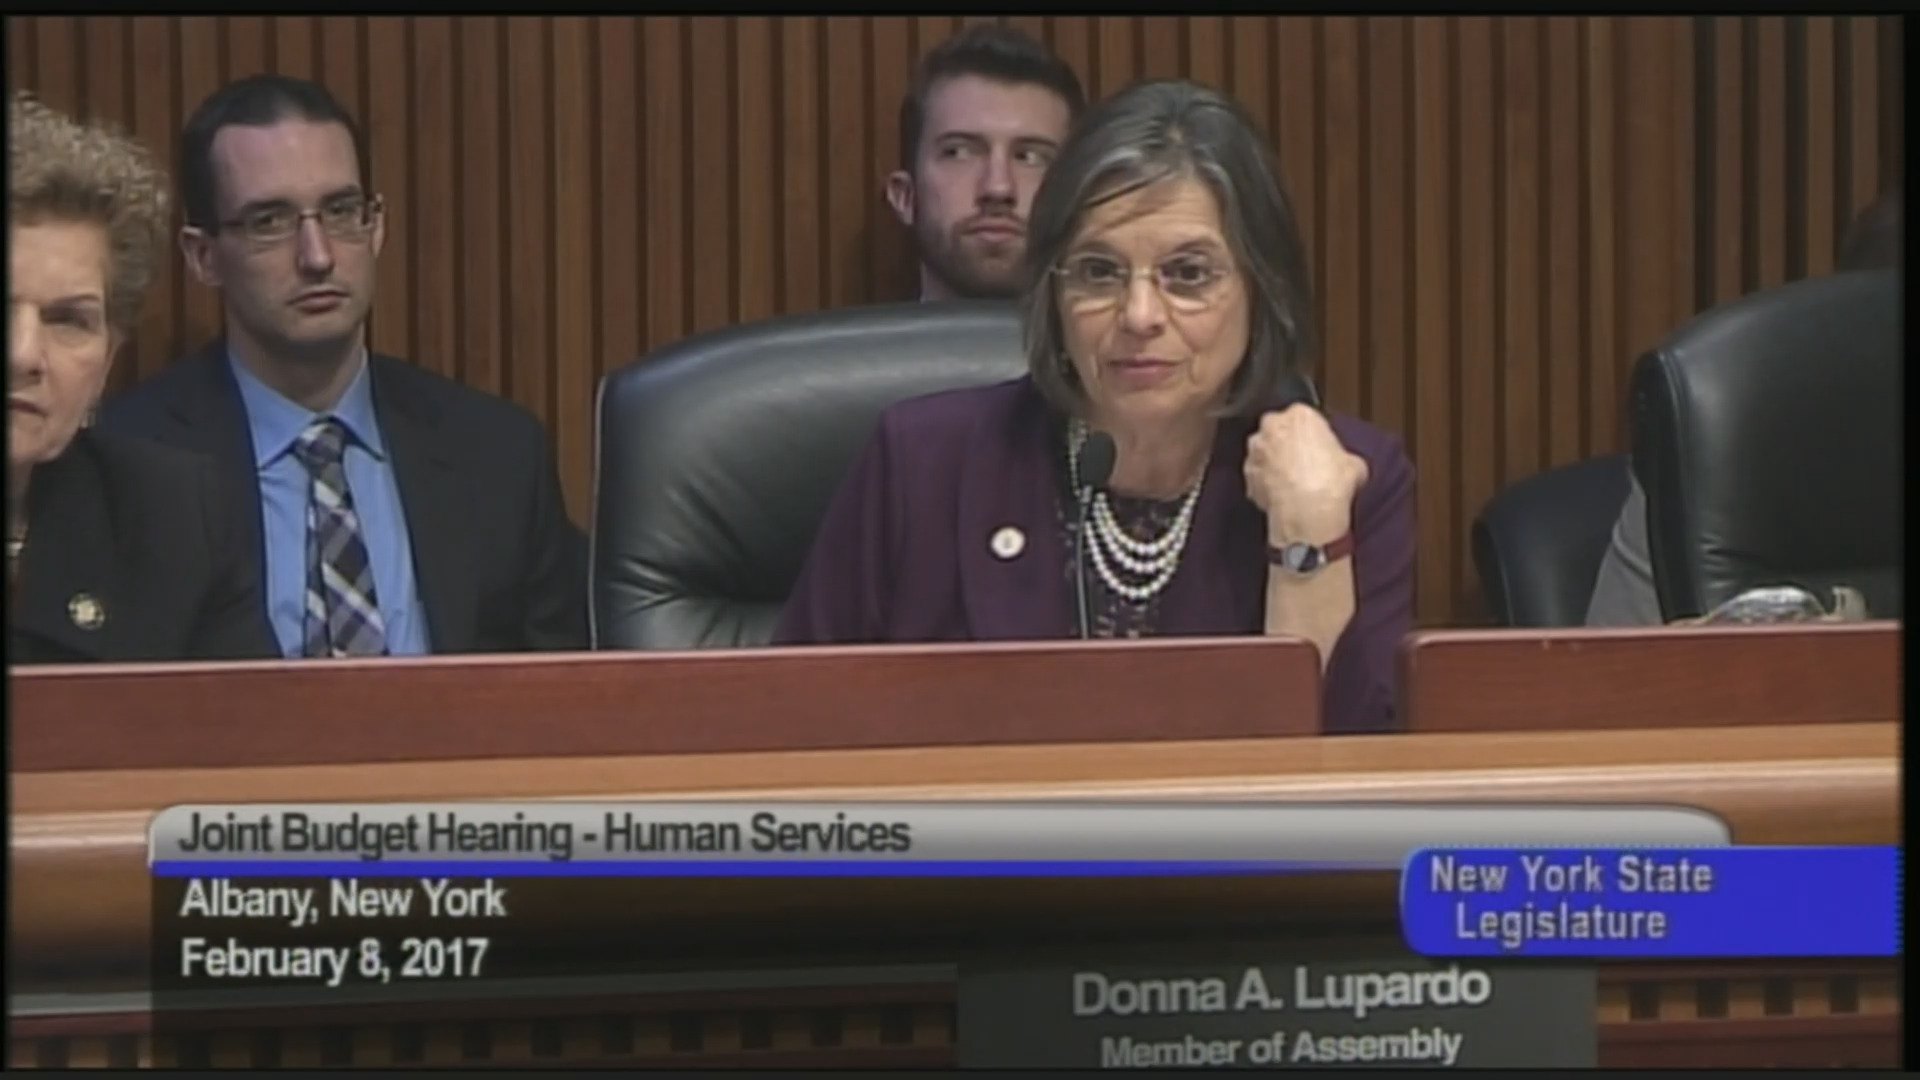 Assembly-Senate Budget Hearing On Human Services